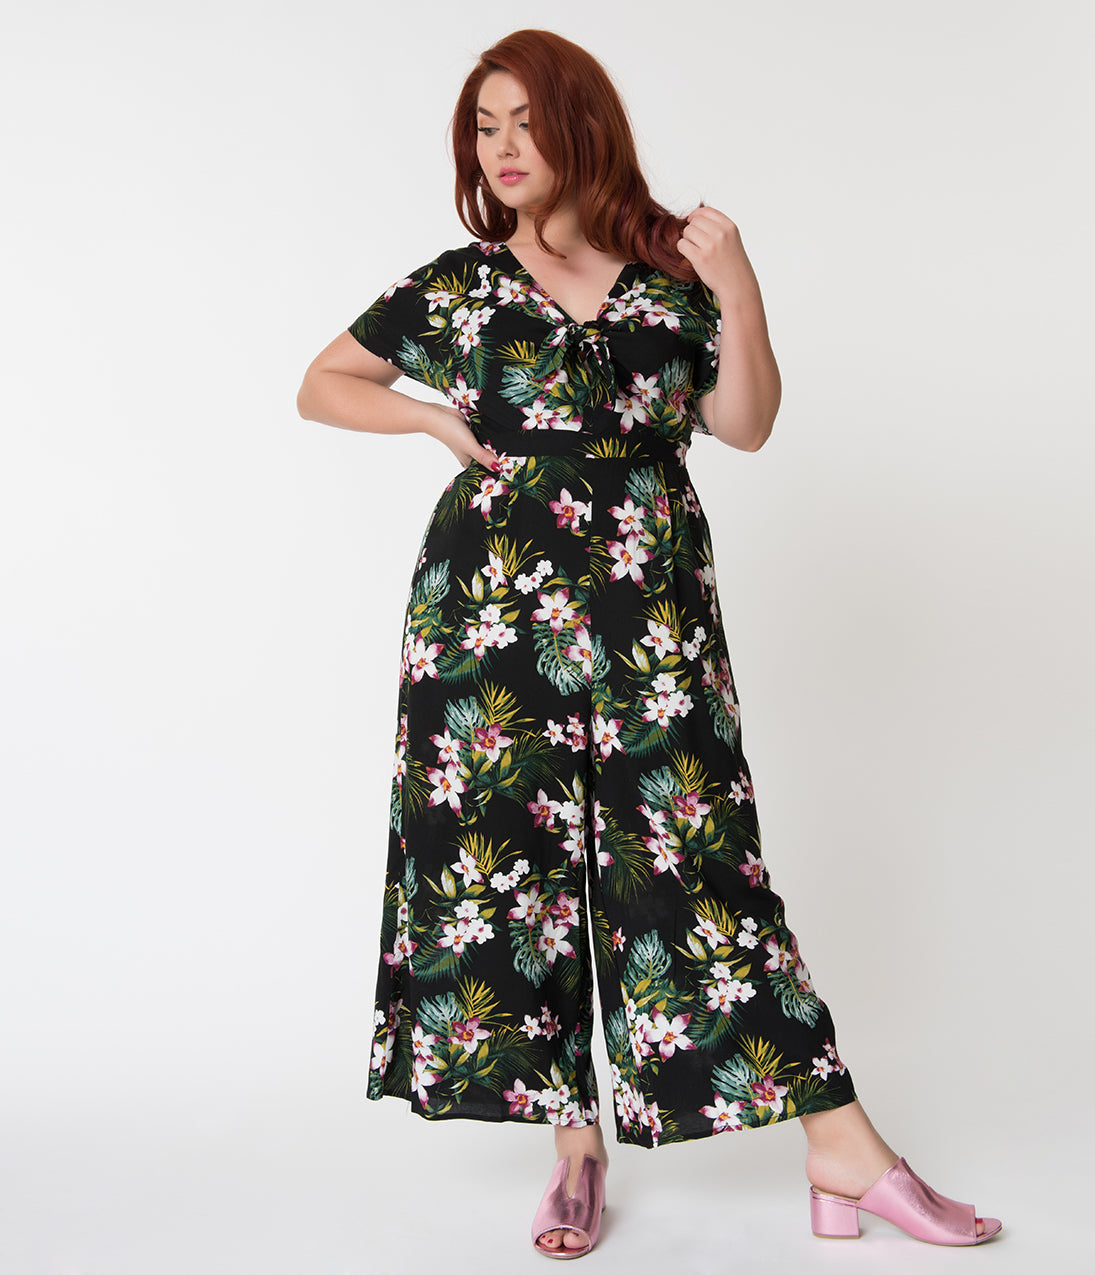 1930s Art Deco Plus Size Dresses | Tea Dresses, Party Dresses Retro Style Plus Size Black Tropical Print Wide Leg Jumpsuit $58.00 AT vintagedancer.com